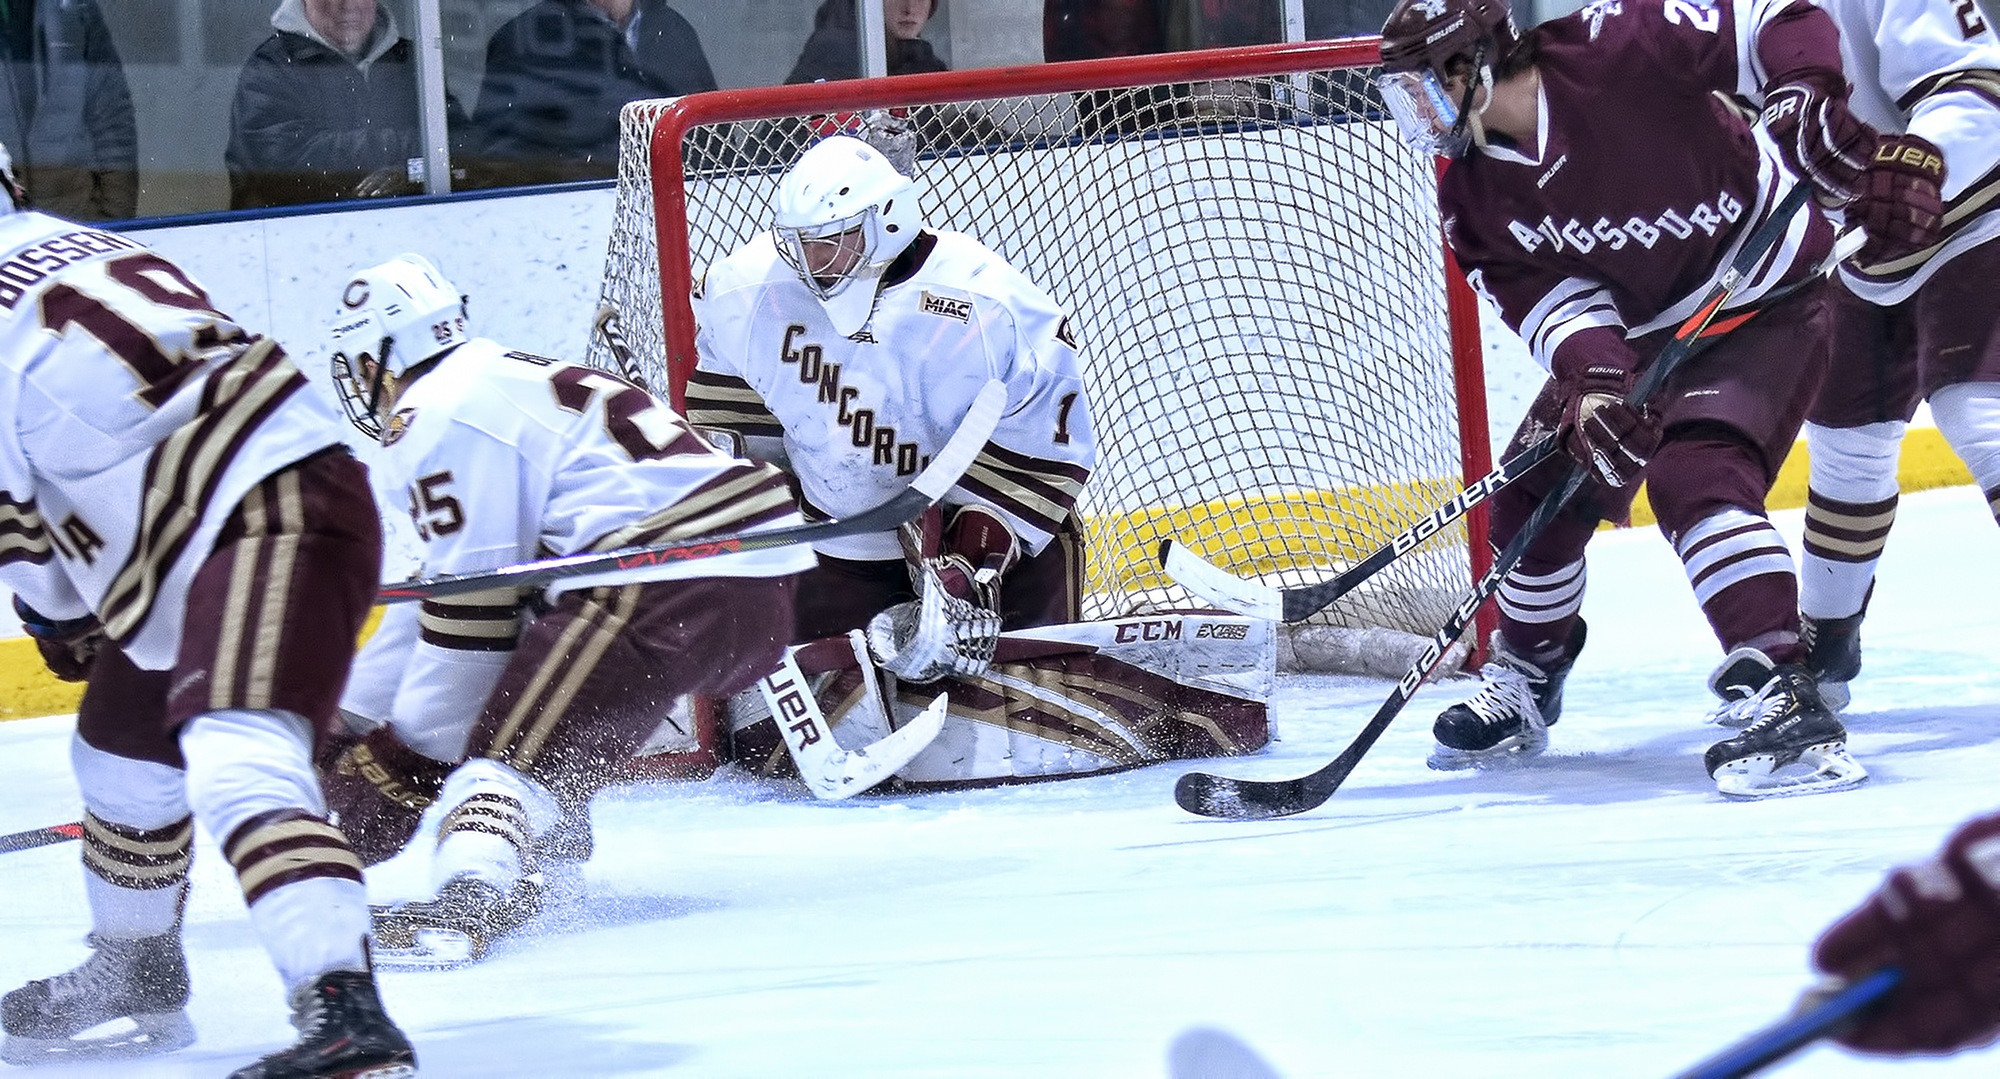 Senior Jacob Stephan goes to the ice to make the save in the first period of the Cobbers' 2-1 win against #15 Augsburg in the series finale. Stephan finished with 35 saves.